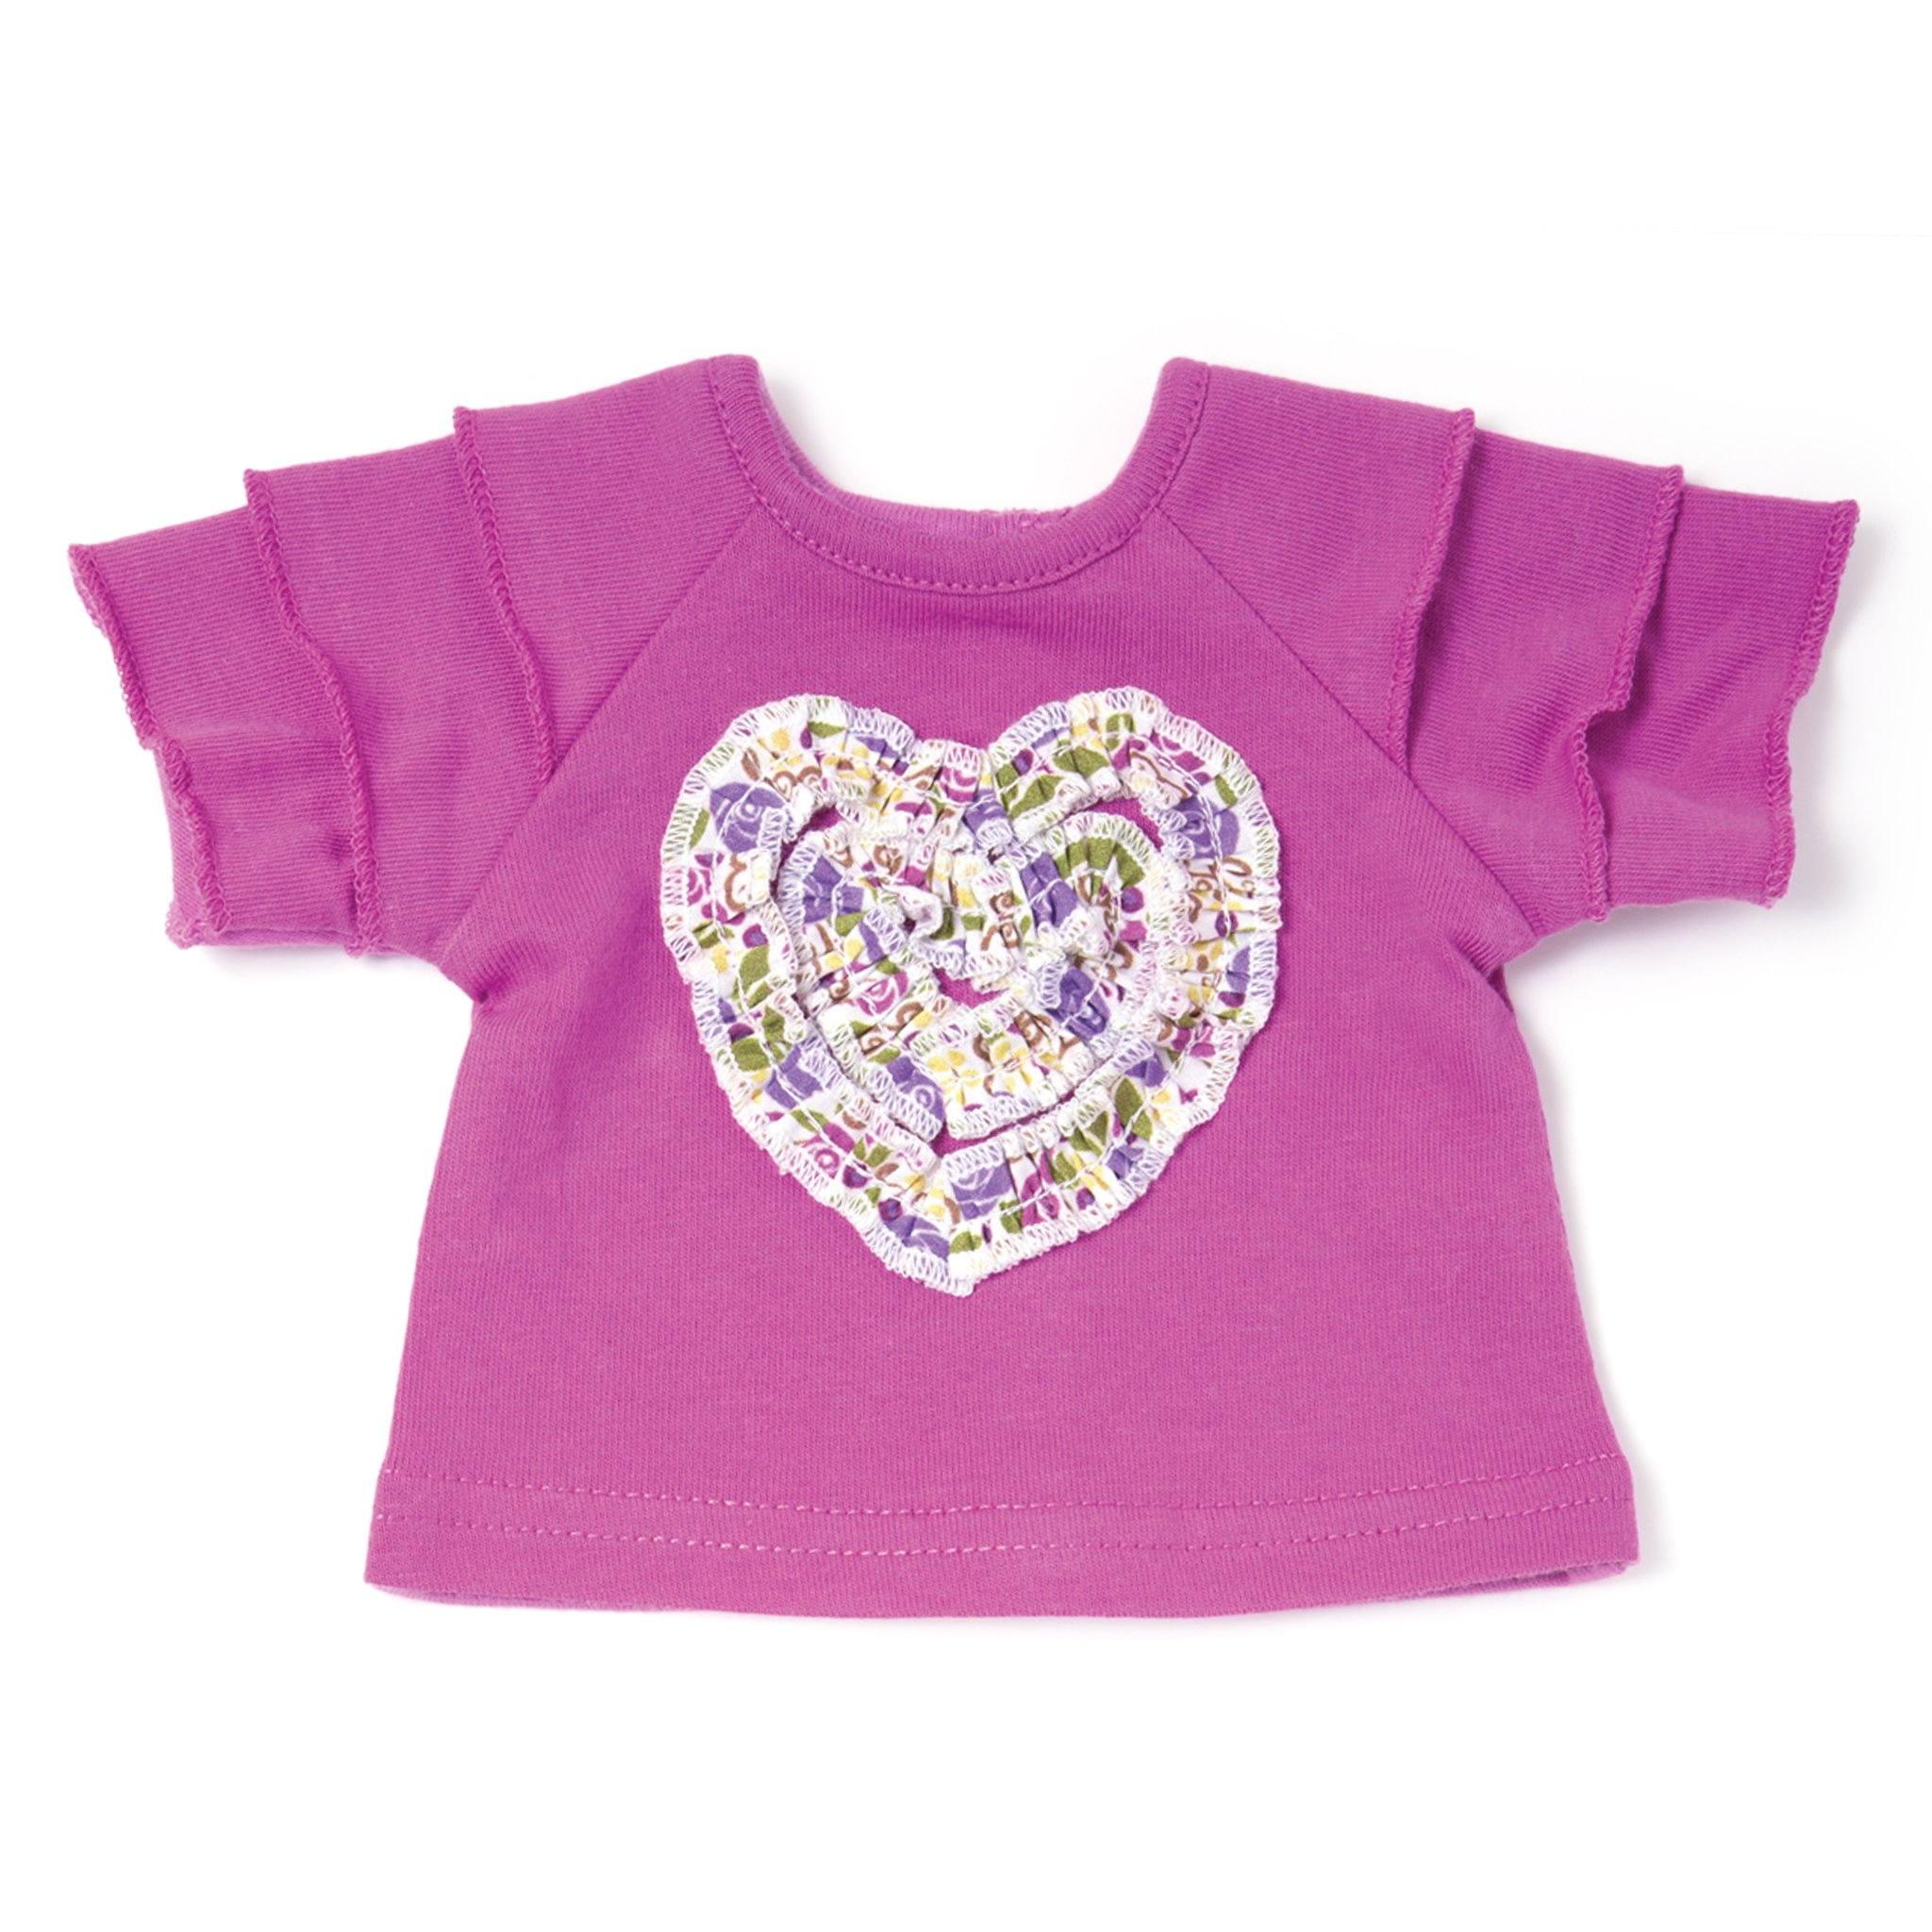 Rose of hearts pink t-shirt with ruffle heart fits all 18 inch dolls.